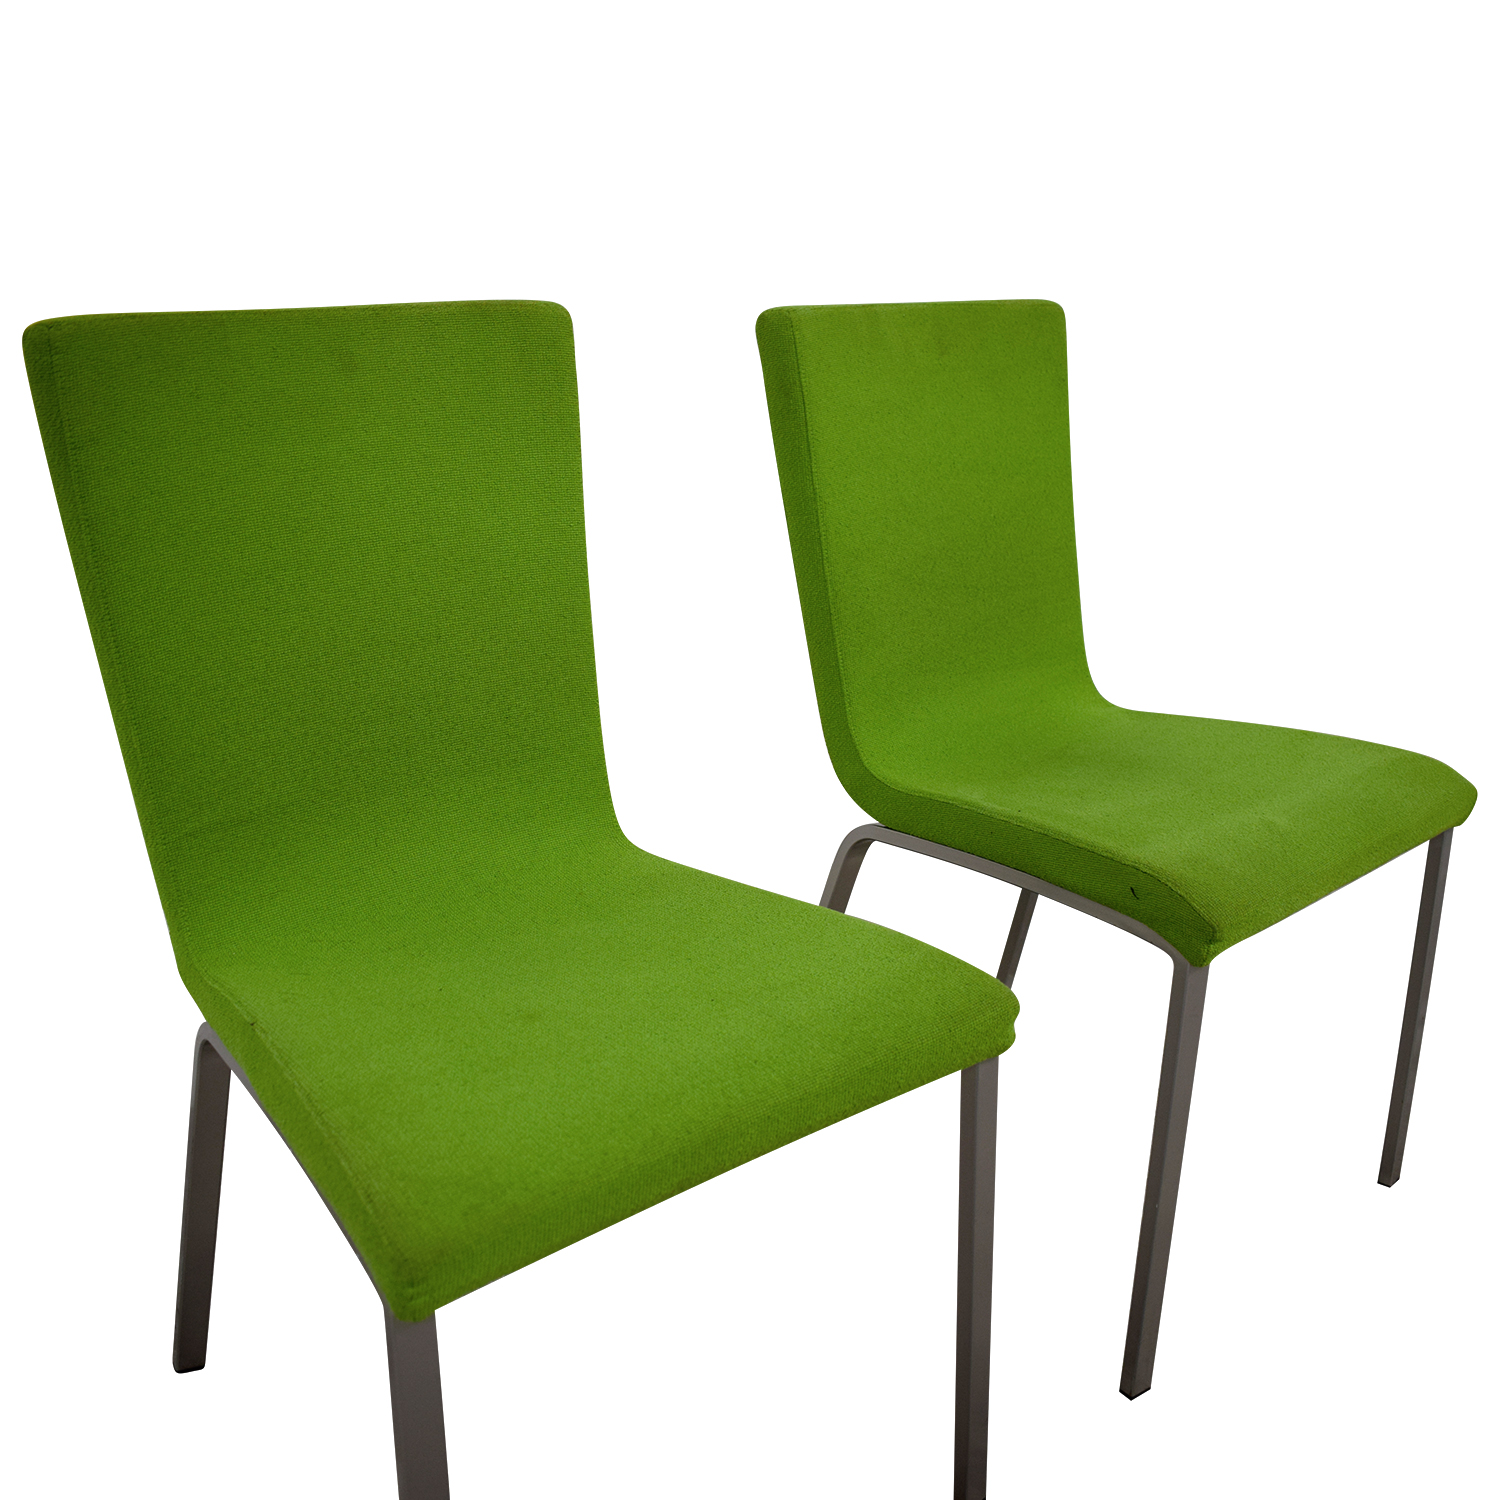 Calligaris Calligaris Green Club Chairs on sale